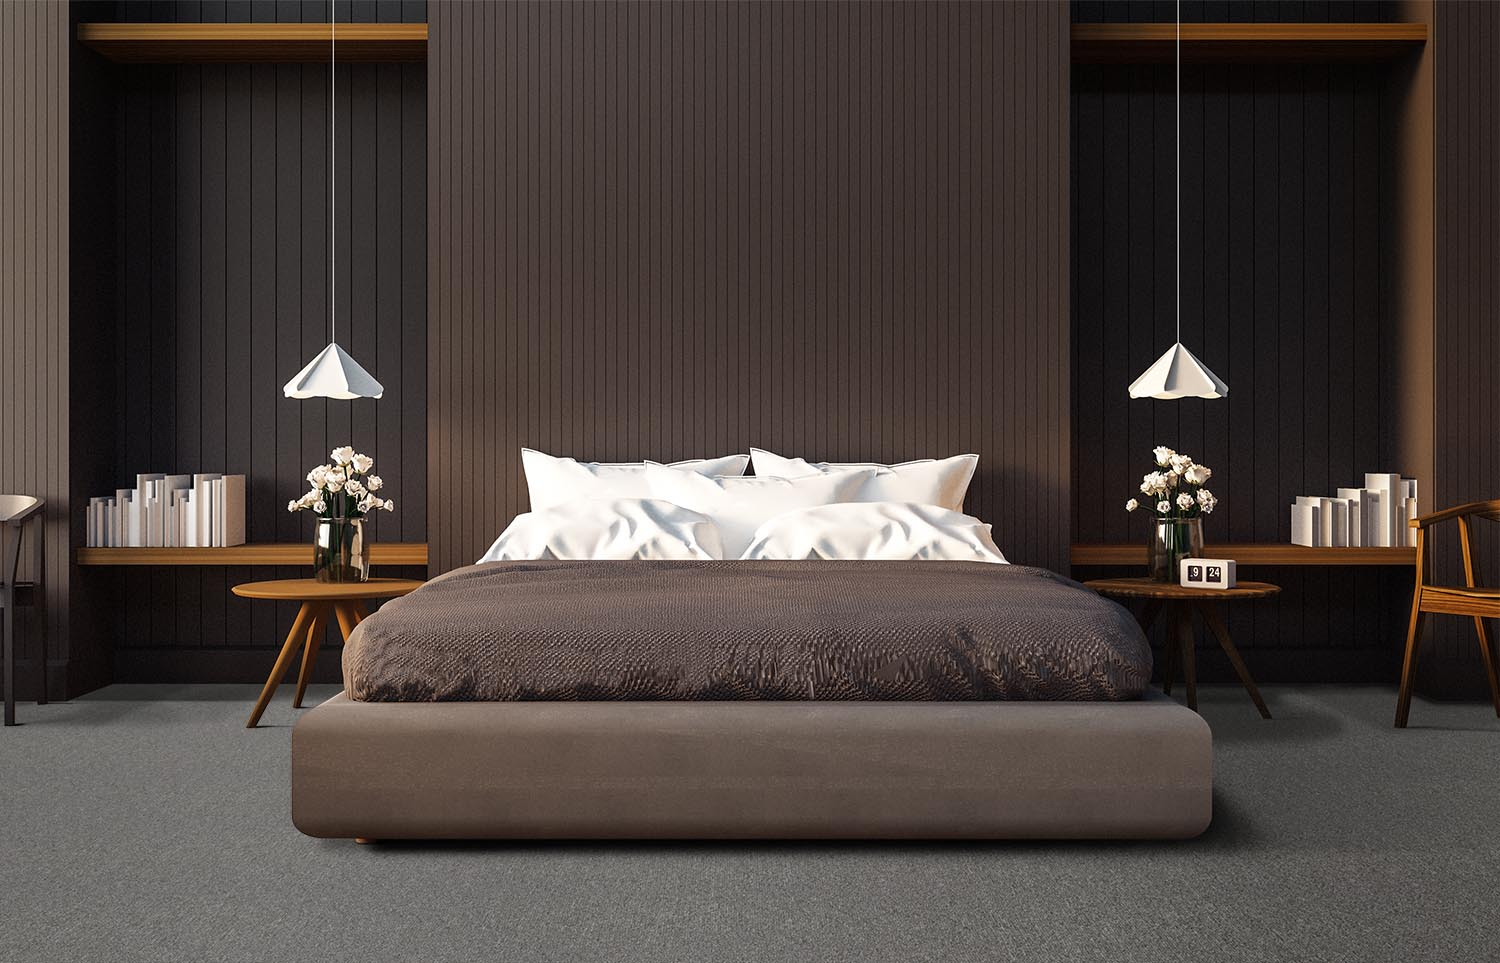 Influence - Mirror That contemporary bedroom